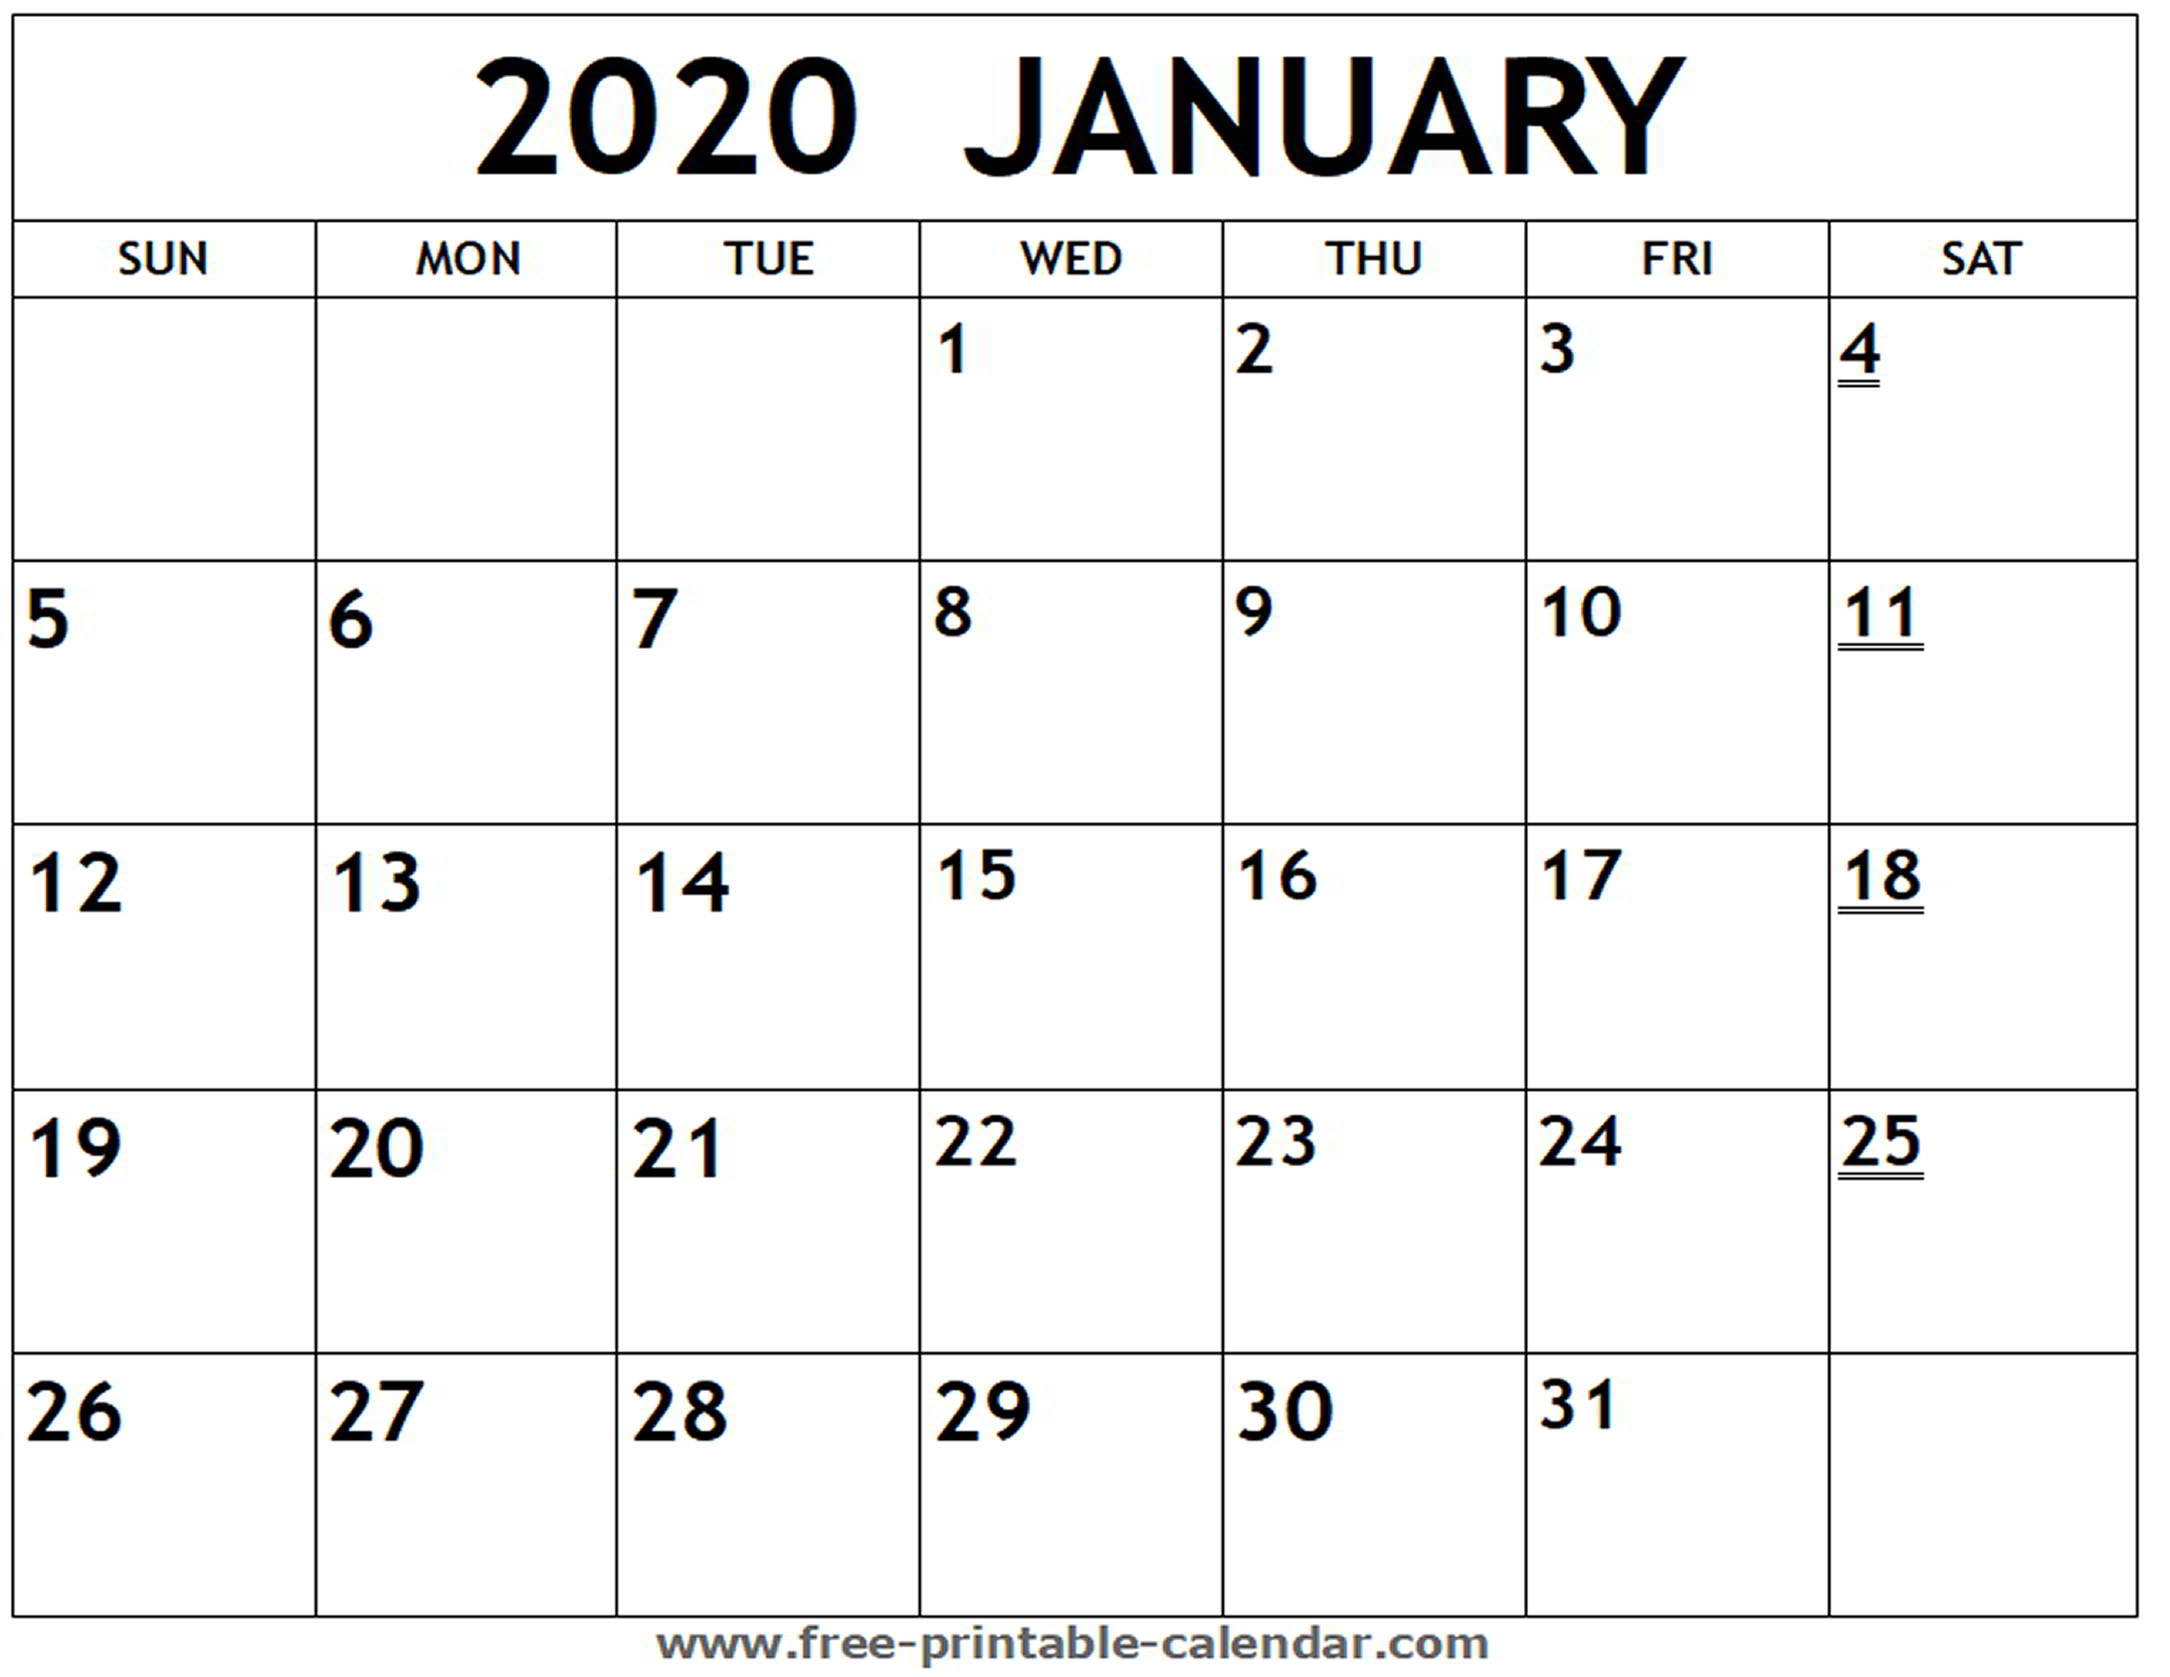 January Monthly Calendar 2020  Bolan.horizonconsulting.co regarding Printable Monthly Calendar